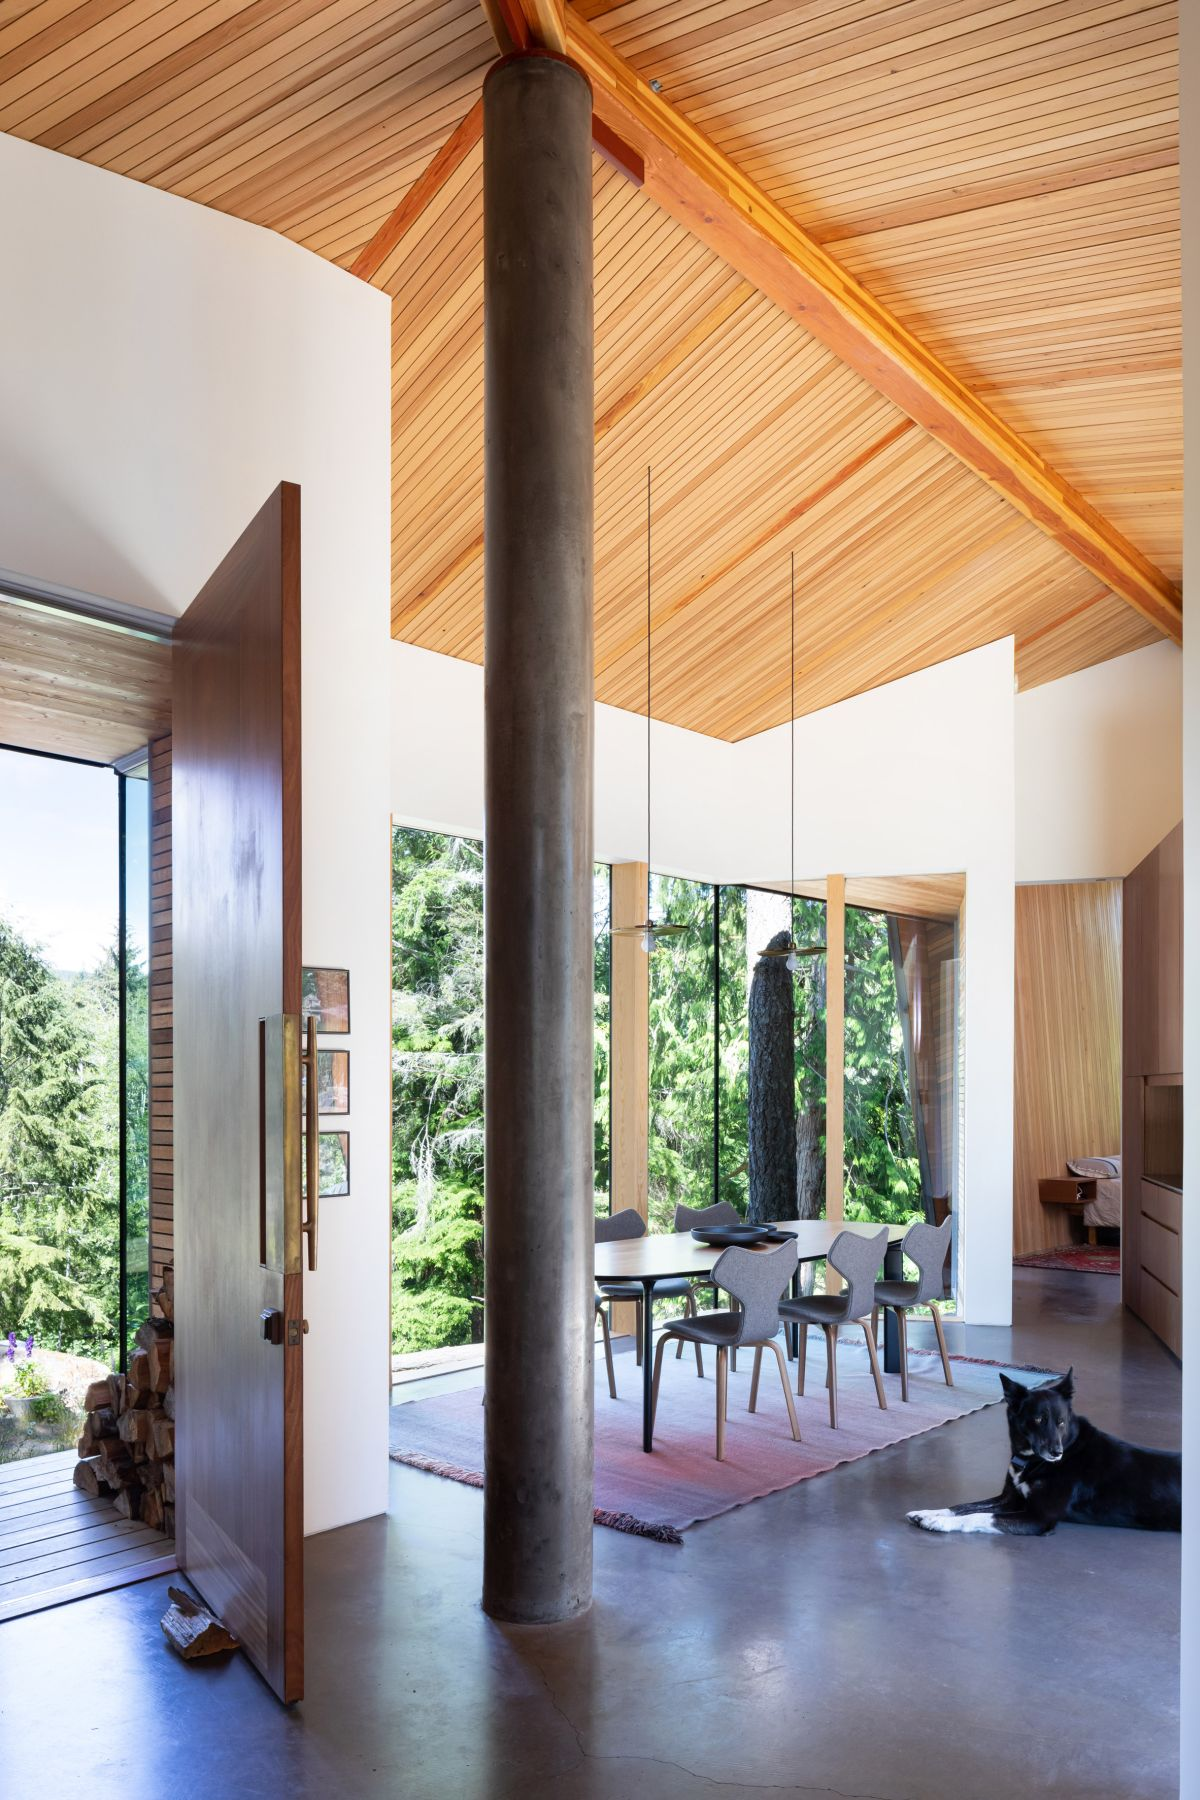 A large blackened steel column runs through the living area and mimics a tree trunk